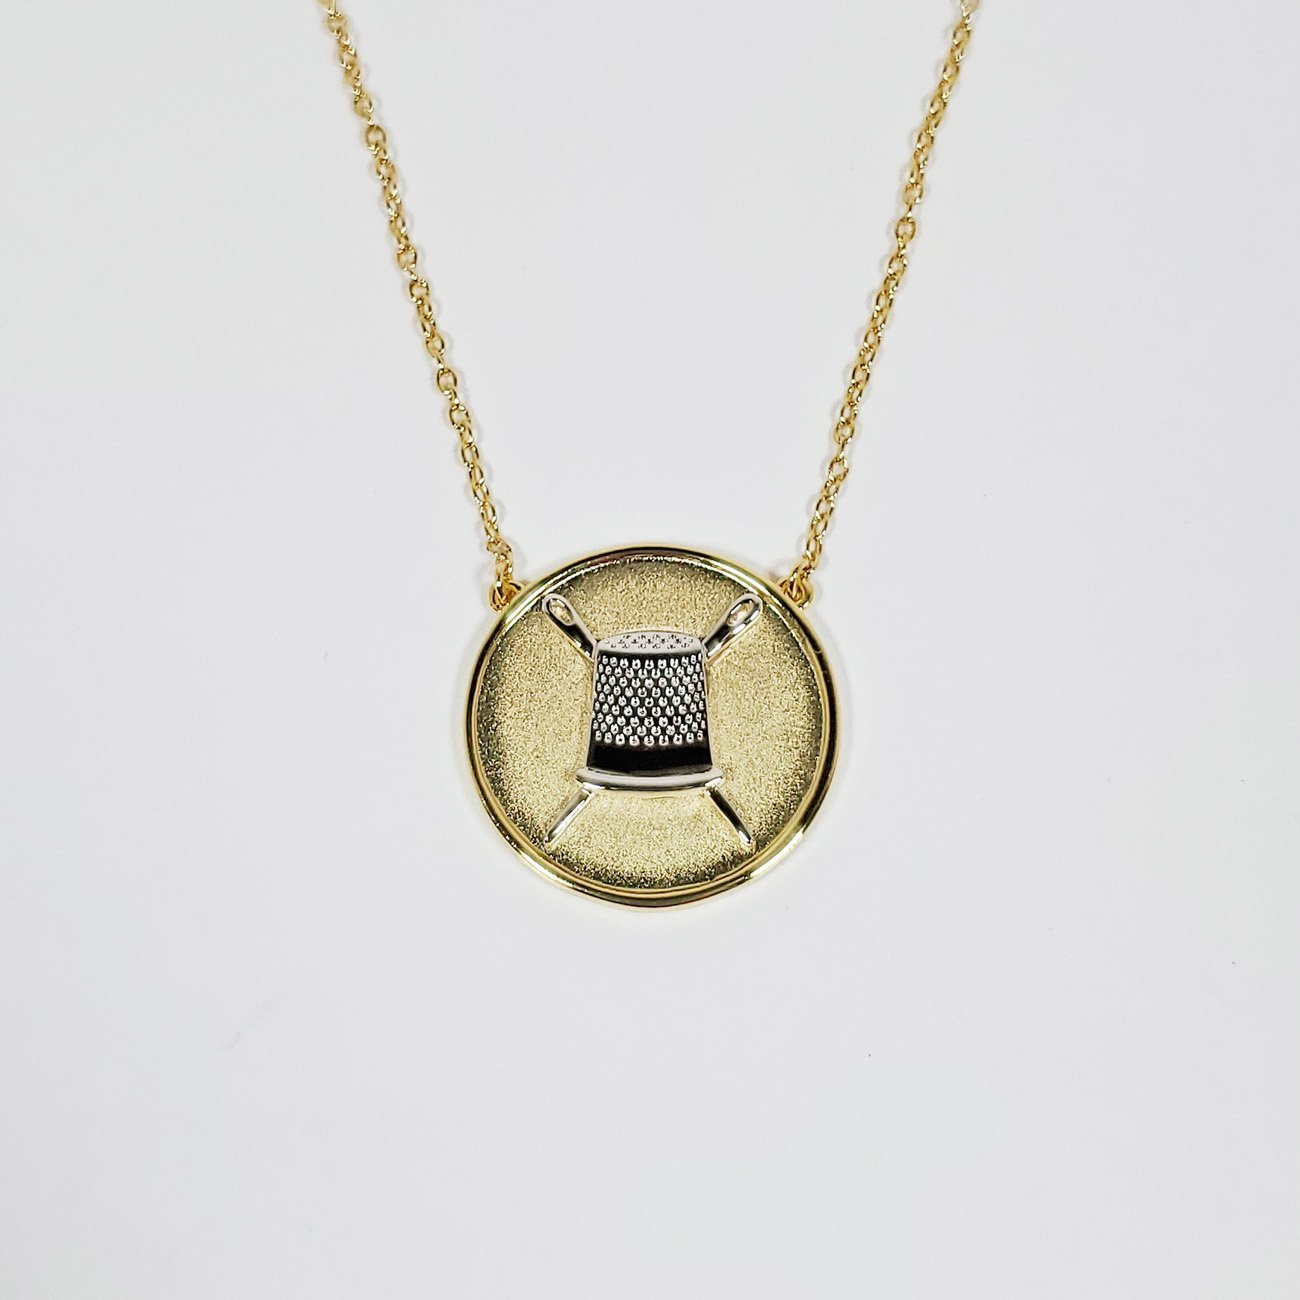 Thimble Coin Pendant Necklace Two Toned Gold/Silver from the Quilt Spot